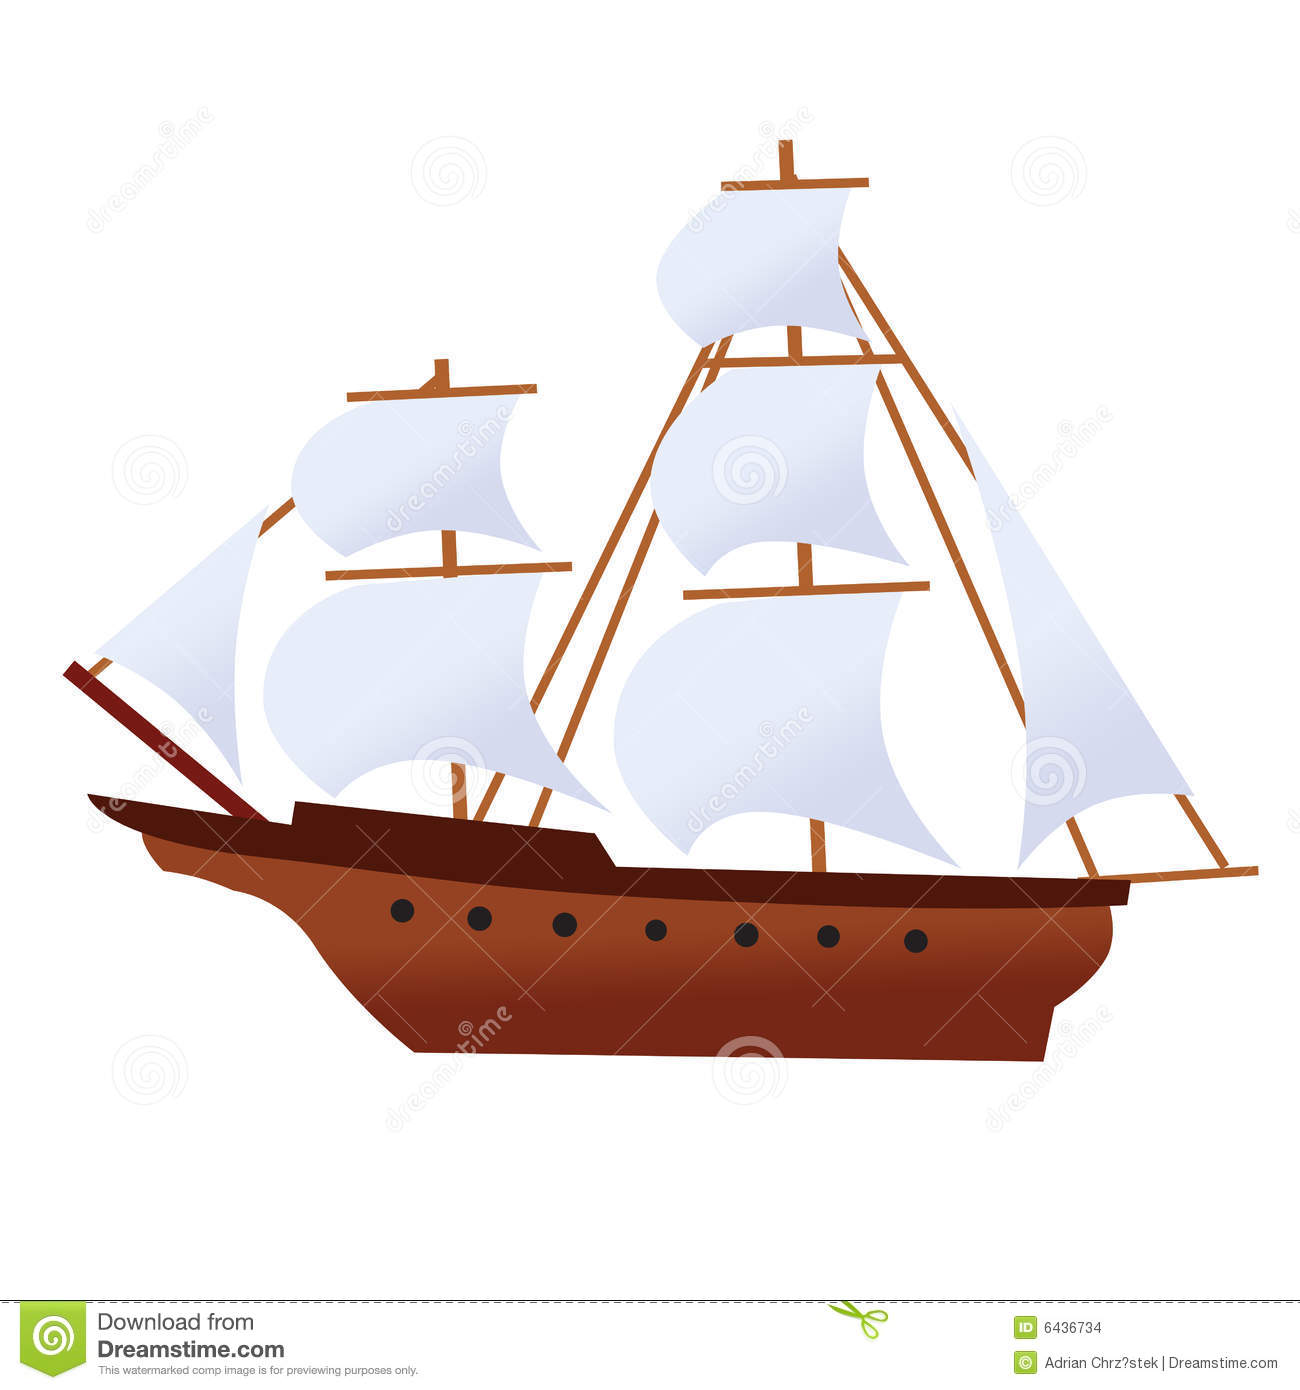 Pirate Ship Corsair Vessel Ghost Ship Stock Images - Image: 6436734